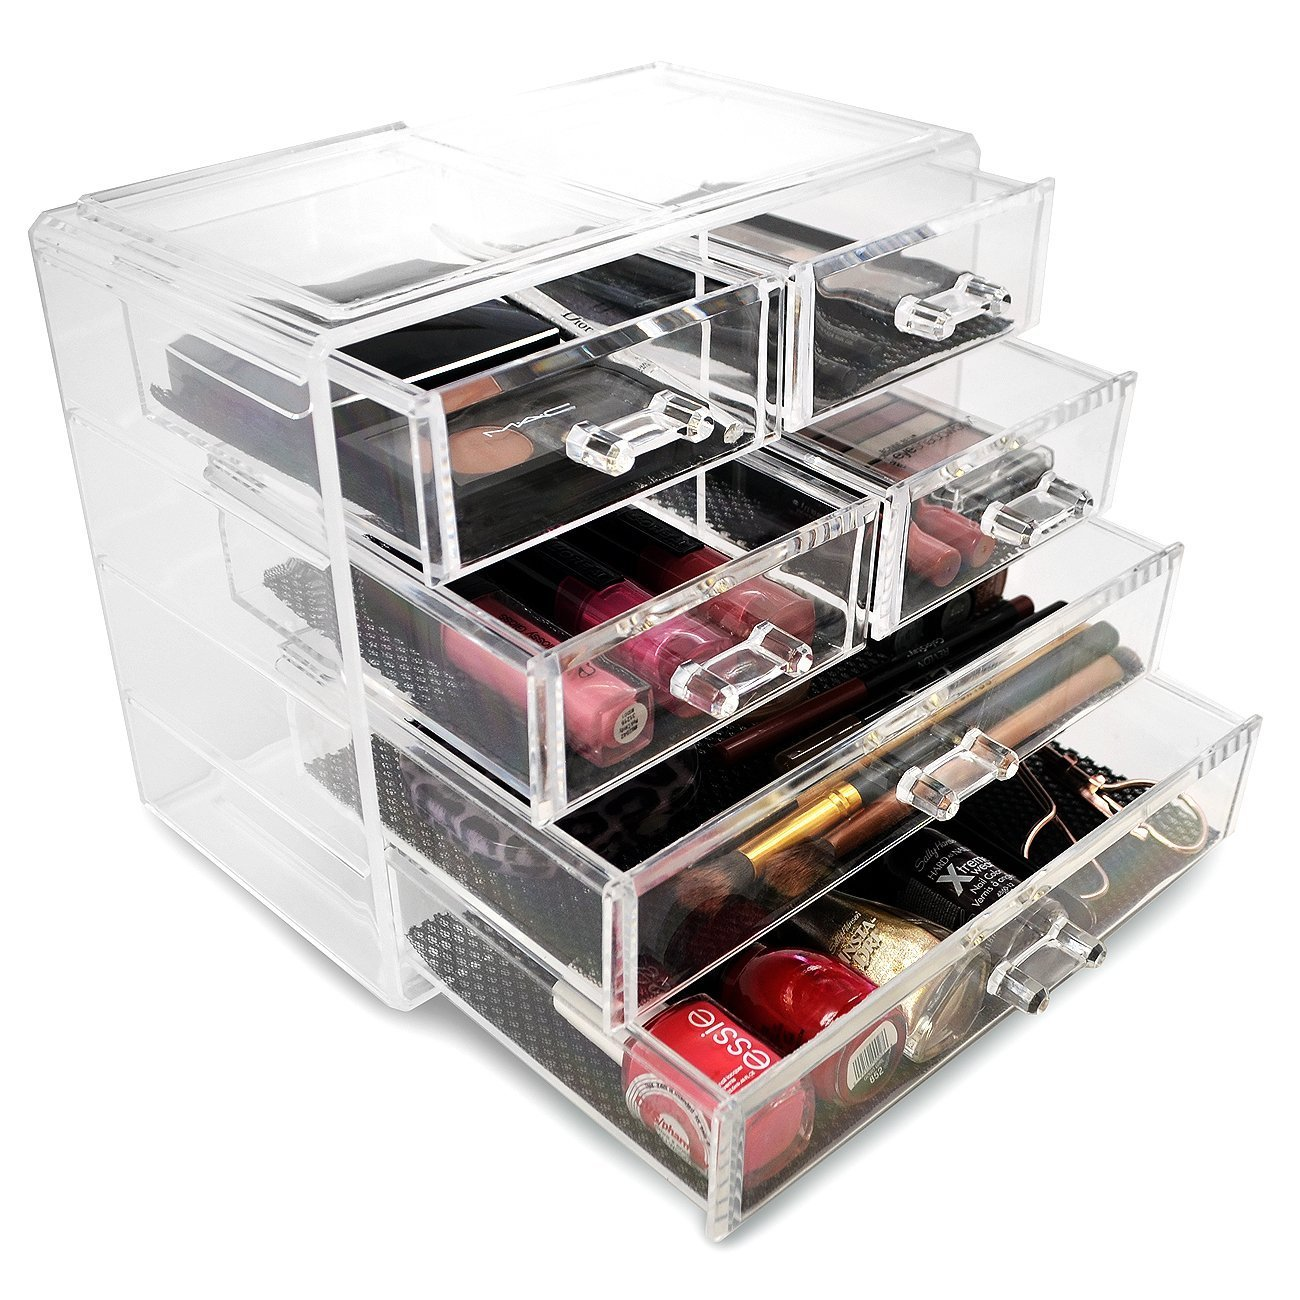 Sorbus Acrylic Drawer Makeup Organizer with Removable Drawers 2 Large and 4 Small Drawers GGI International MUP-STRG24